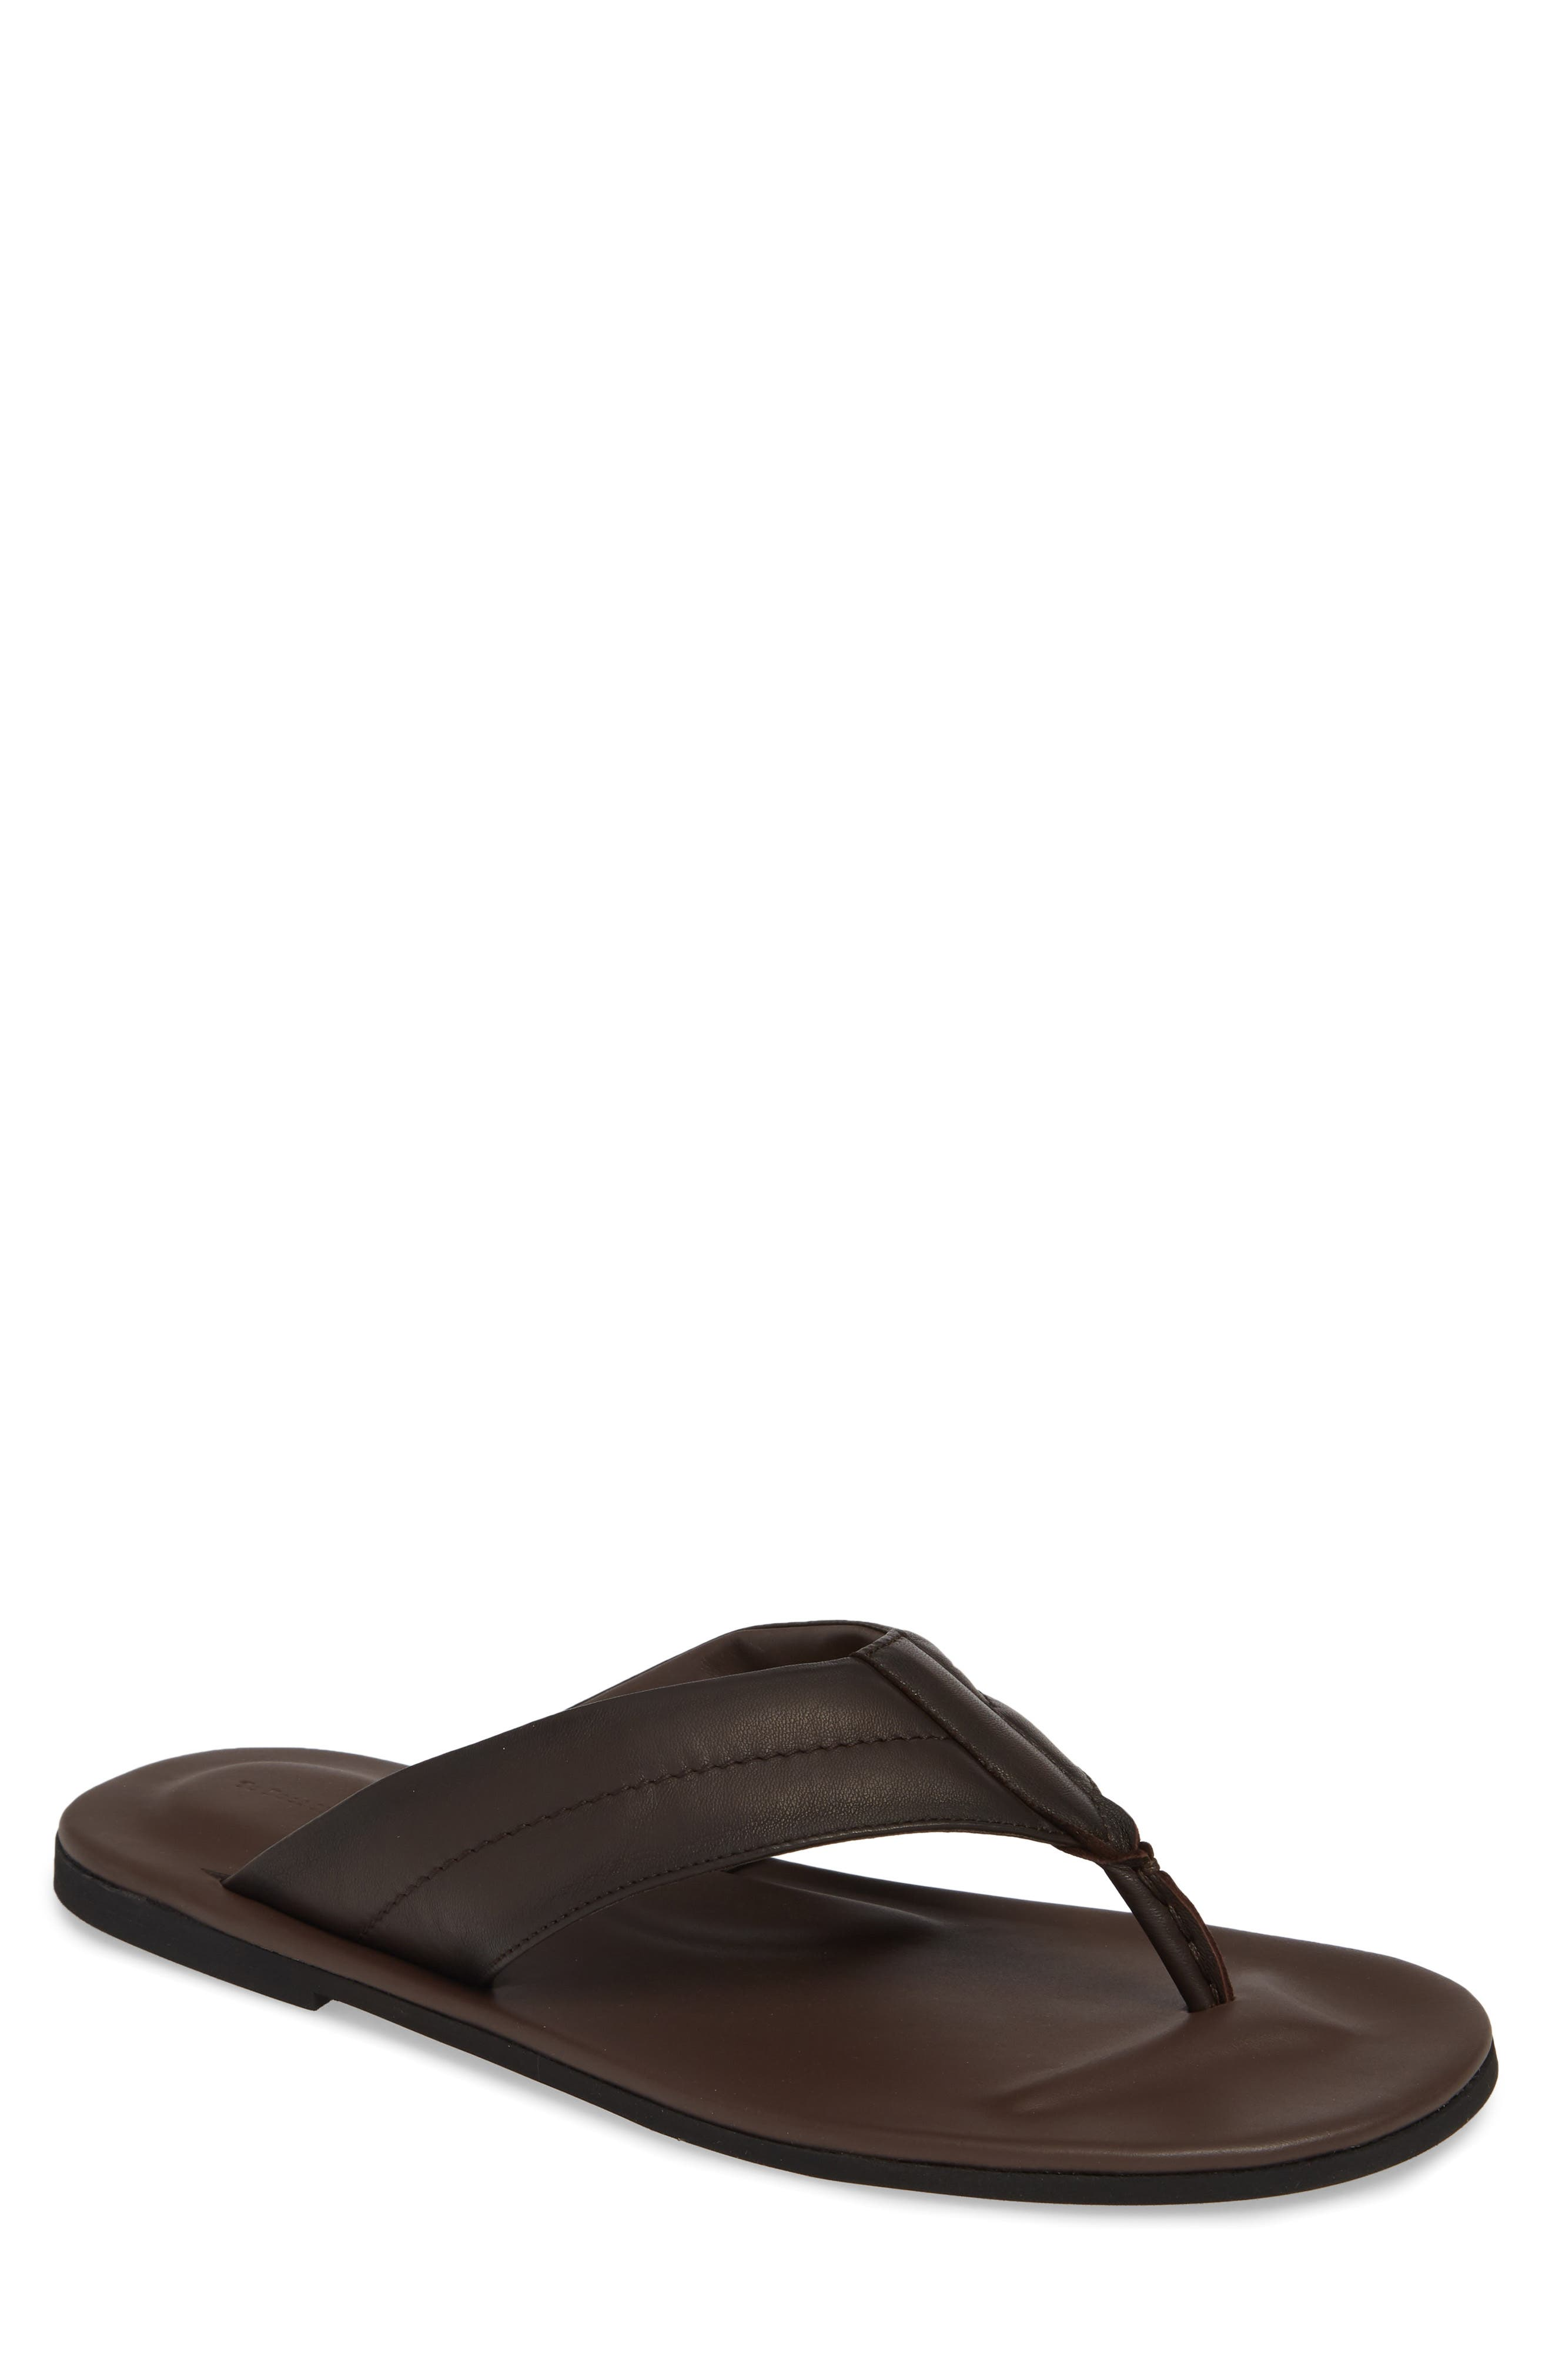 TO BOOT NEW YORK, Grande Flip Flop, Main thumbnail 1, color, BROWN LEATHER